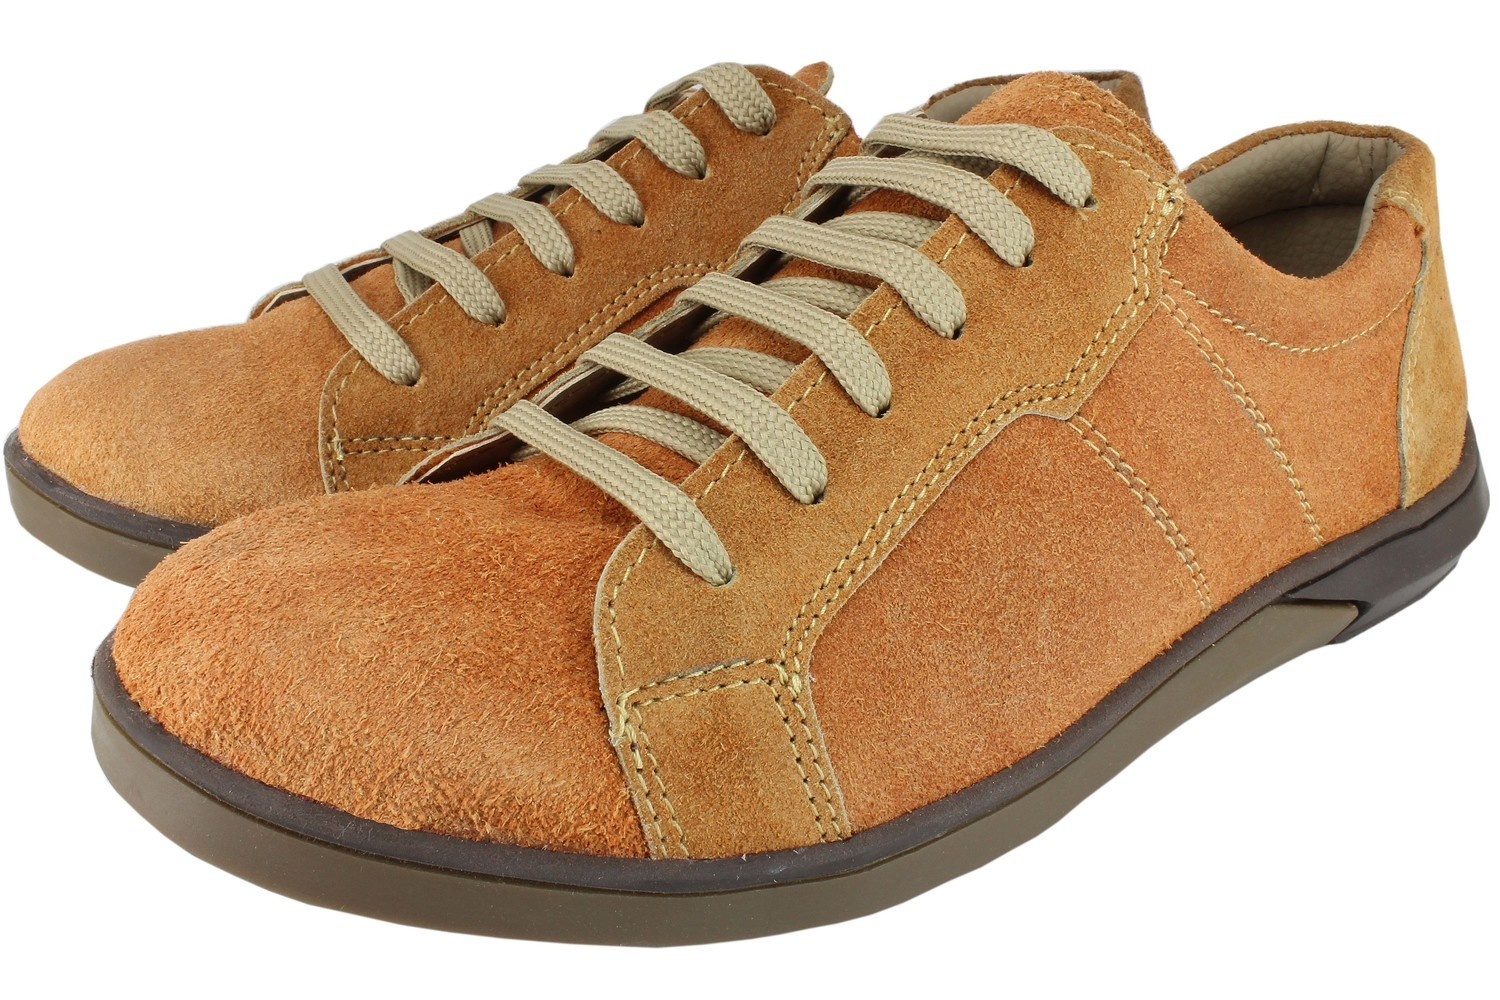 Mens Shoes Genuine Suede Leather Light Brown - SUGGESTED RETAIL PRICE $45 - WHOLESALE PRICE $7 - Minimum purchase 12 pairs